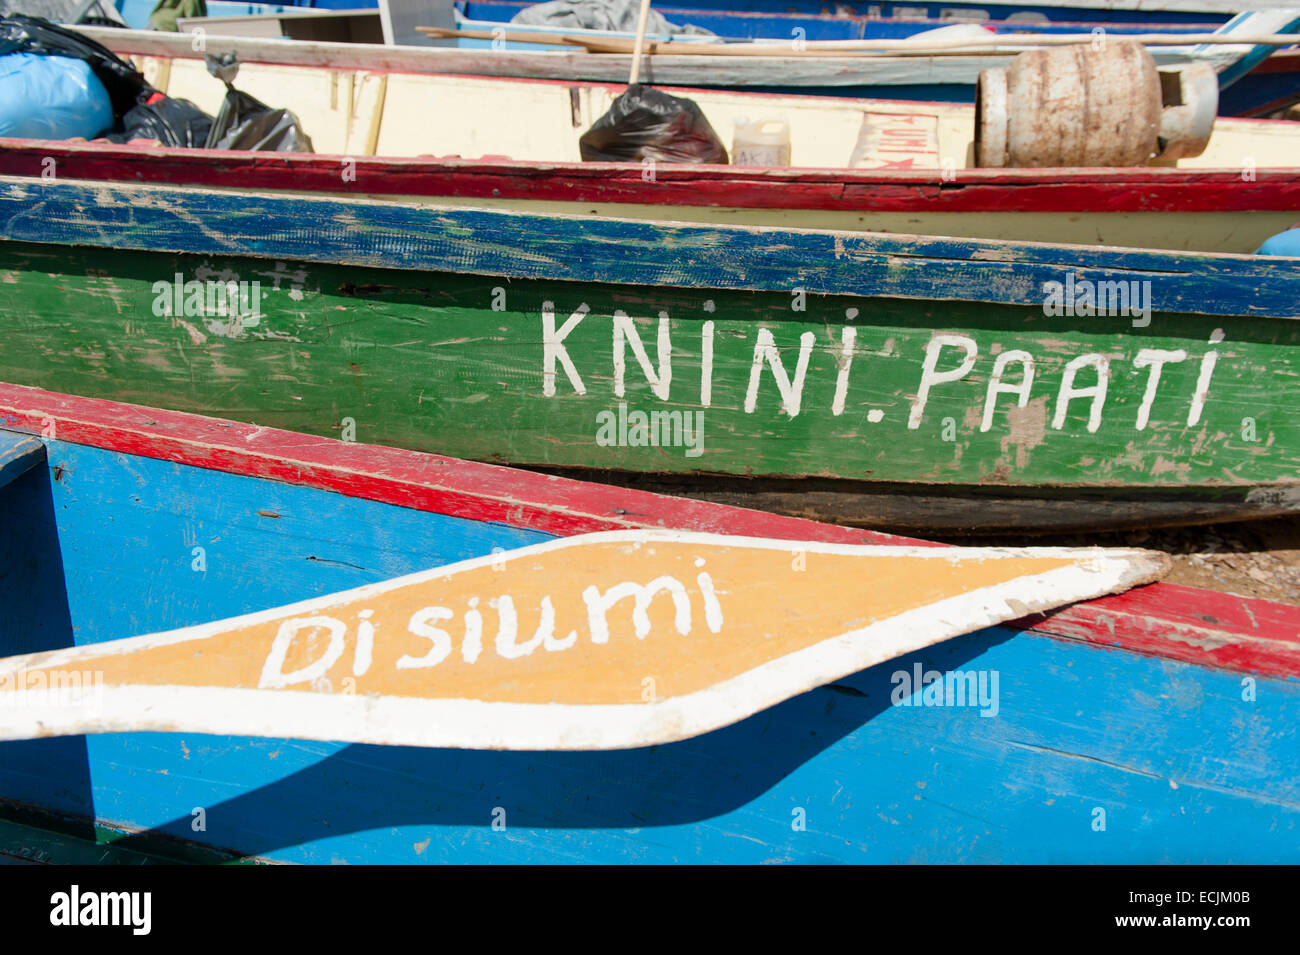 Detail of a Karjole (canoe) at the river port of Atjoni, Pokigron, Suriname - Stock Image